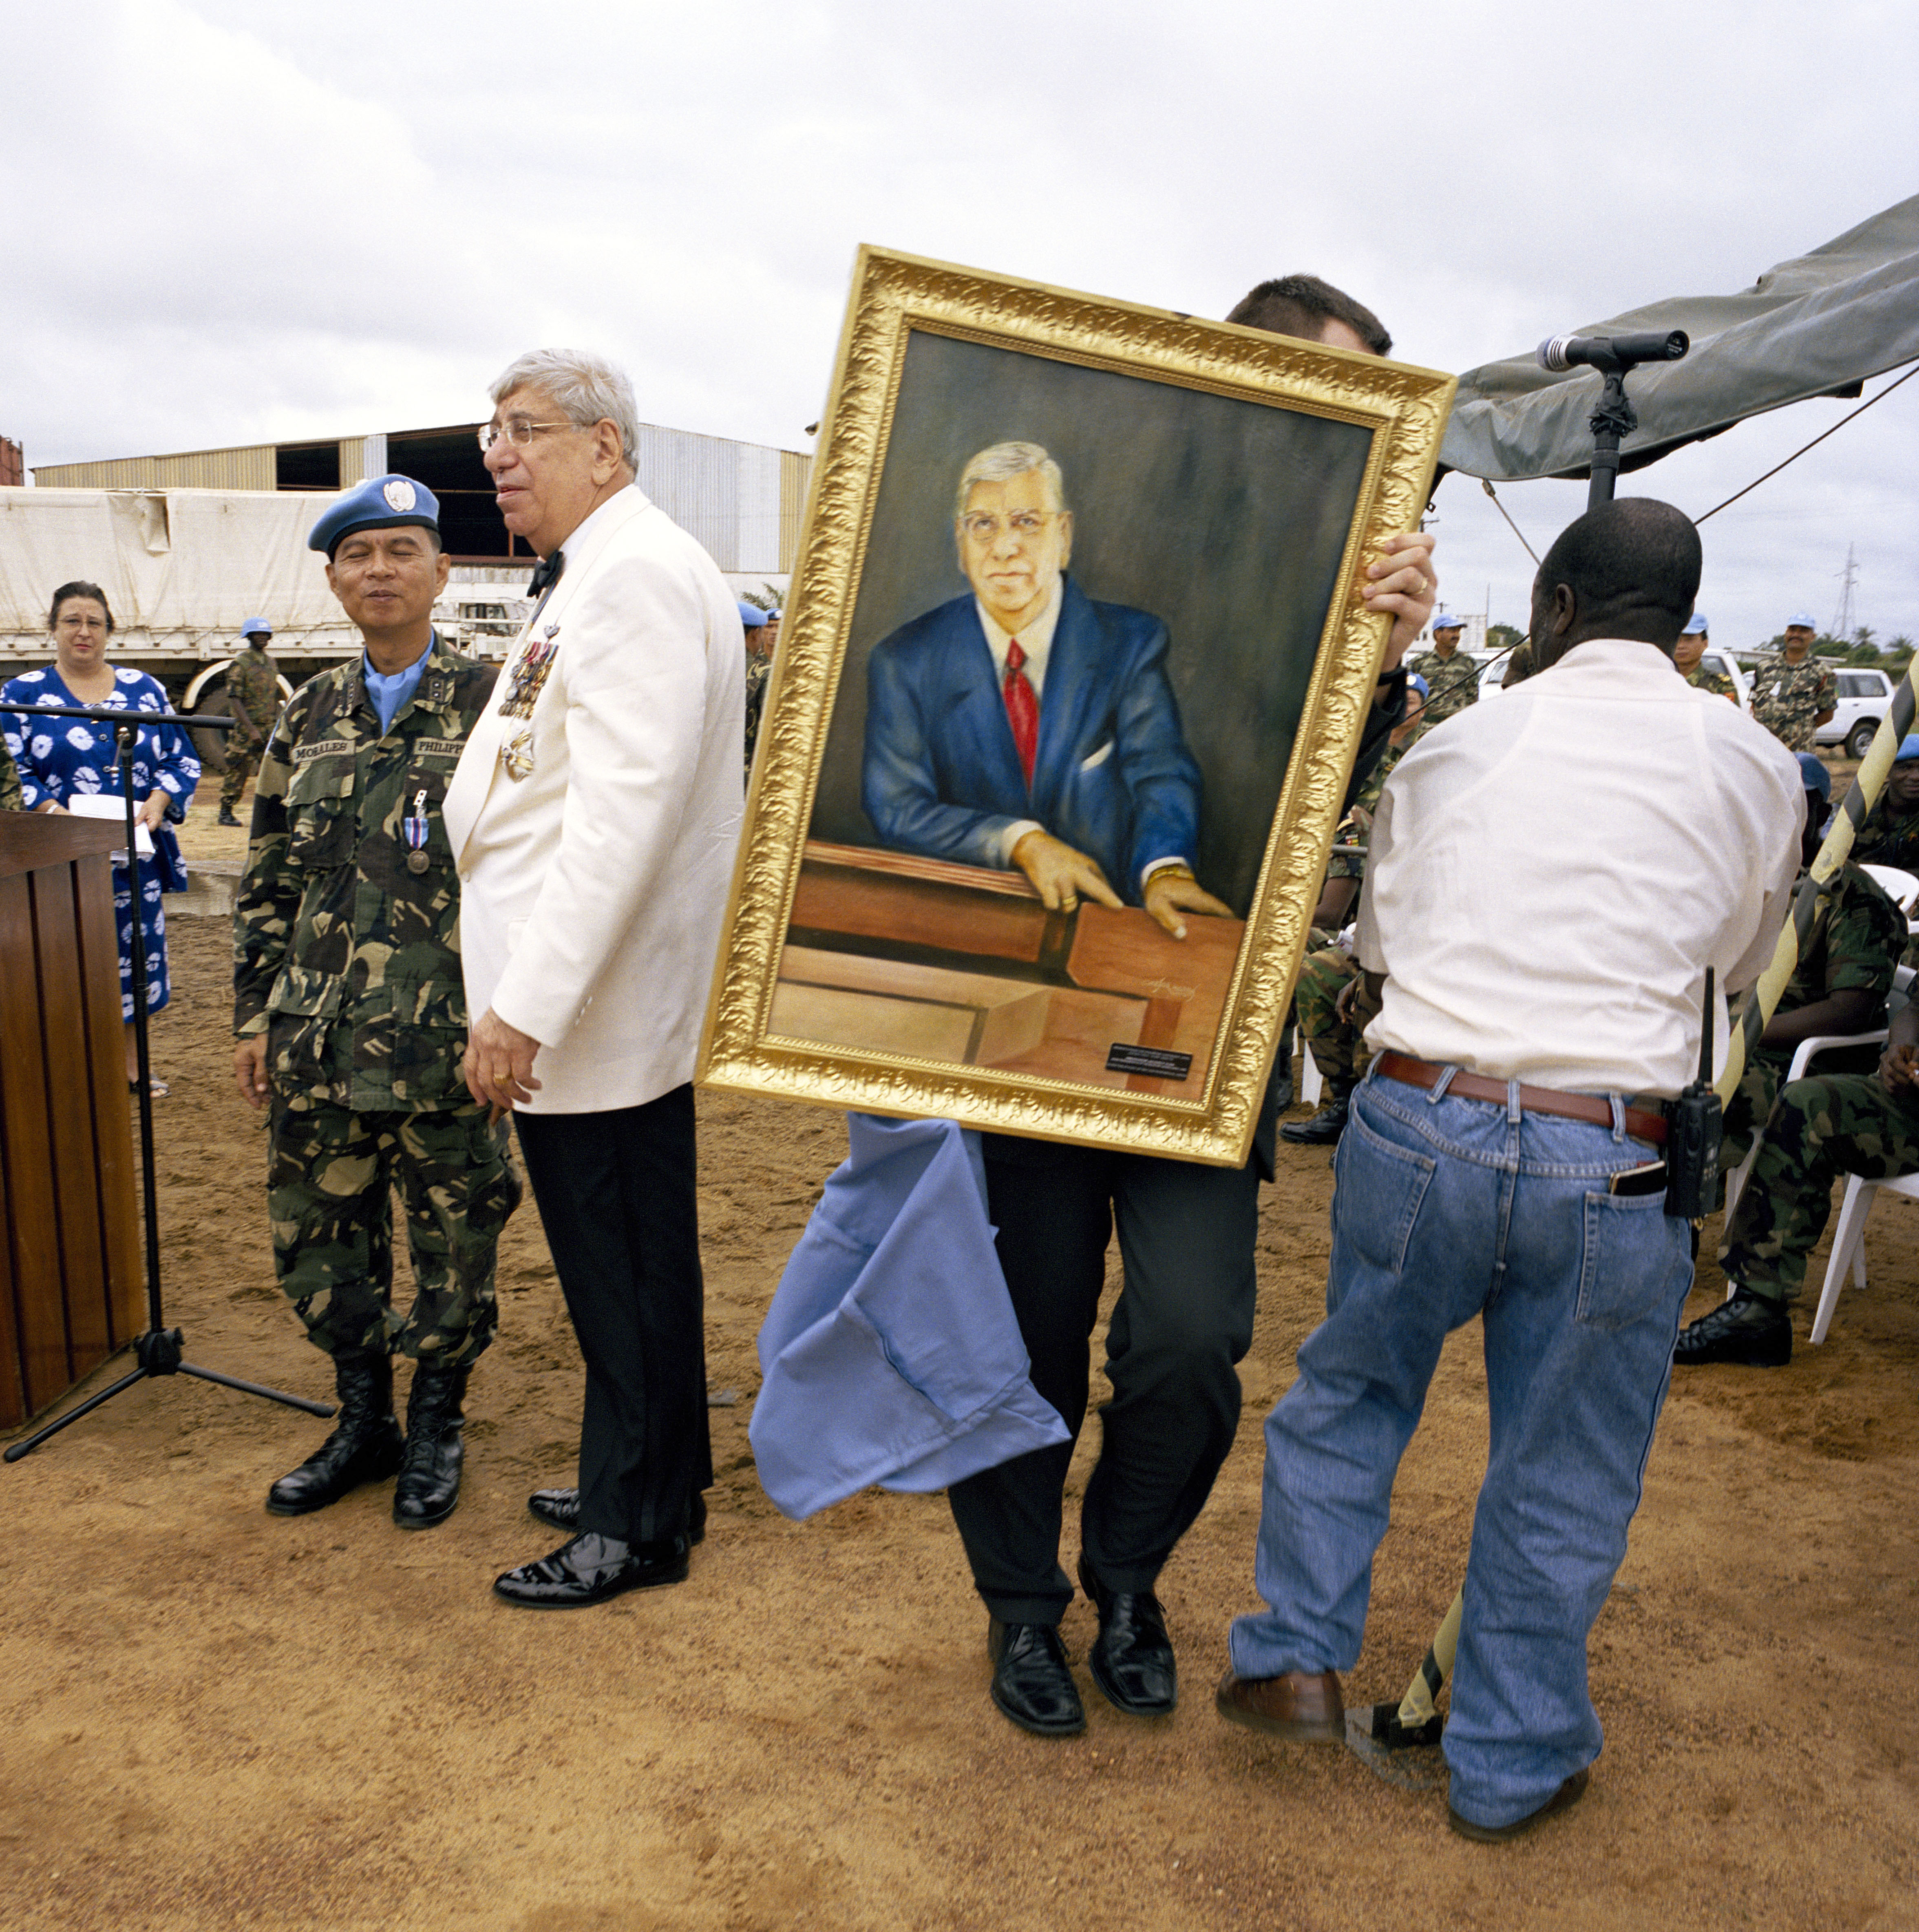 Tim Hetherington / Magnum  Liberia. Monrovia. 2004. Ambassador Jacques Klein, the UN's special representative of the secretary-general, receives a portrait of himself from the Fillipino contingent at a parade to mark the end of its tour of duty.